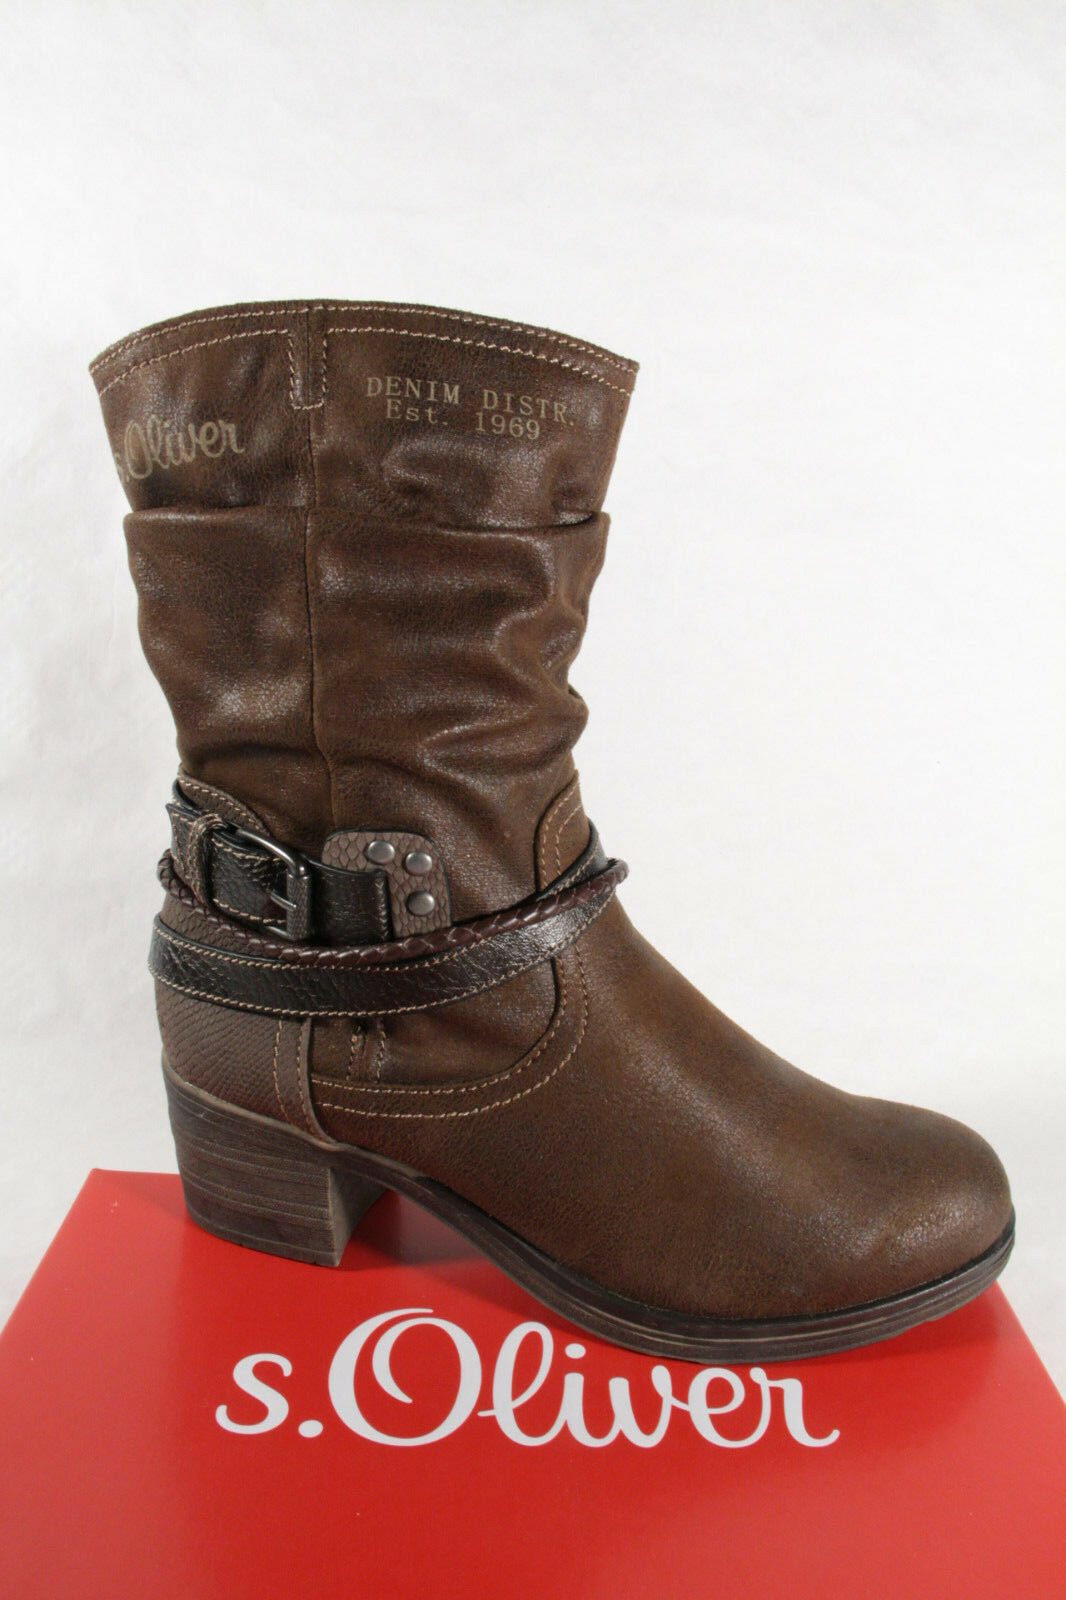 S.Oliver 25346 Boots, Ankle Boots Winter Boots Brown 25346 NEW